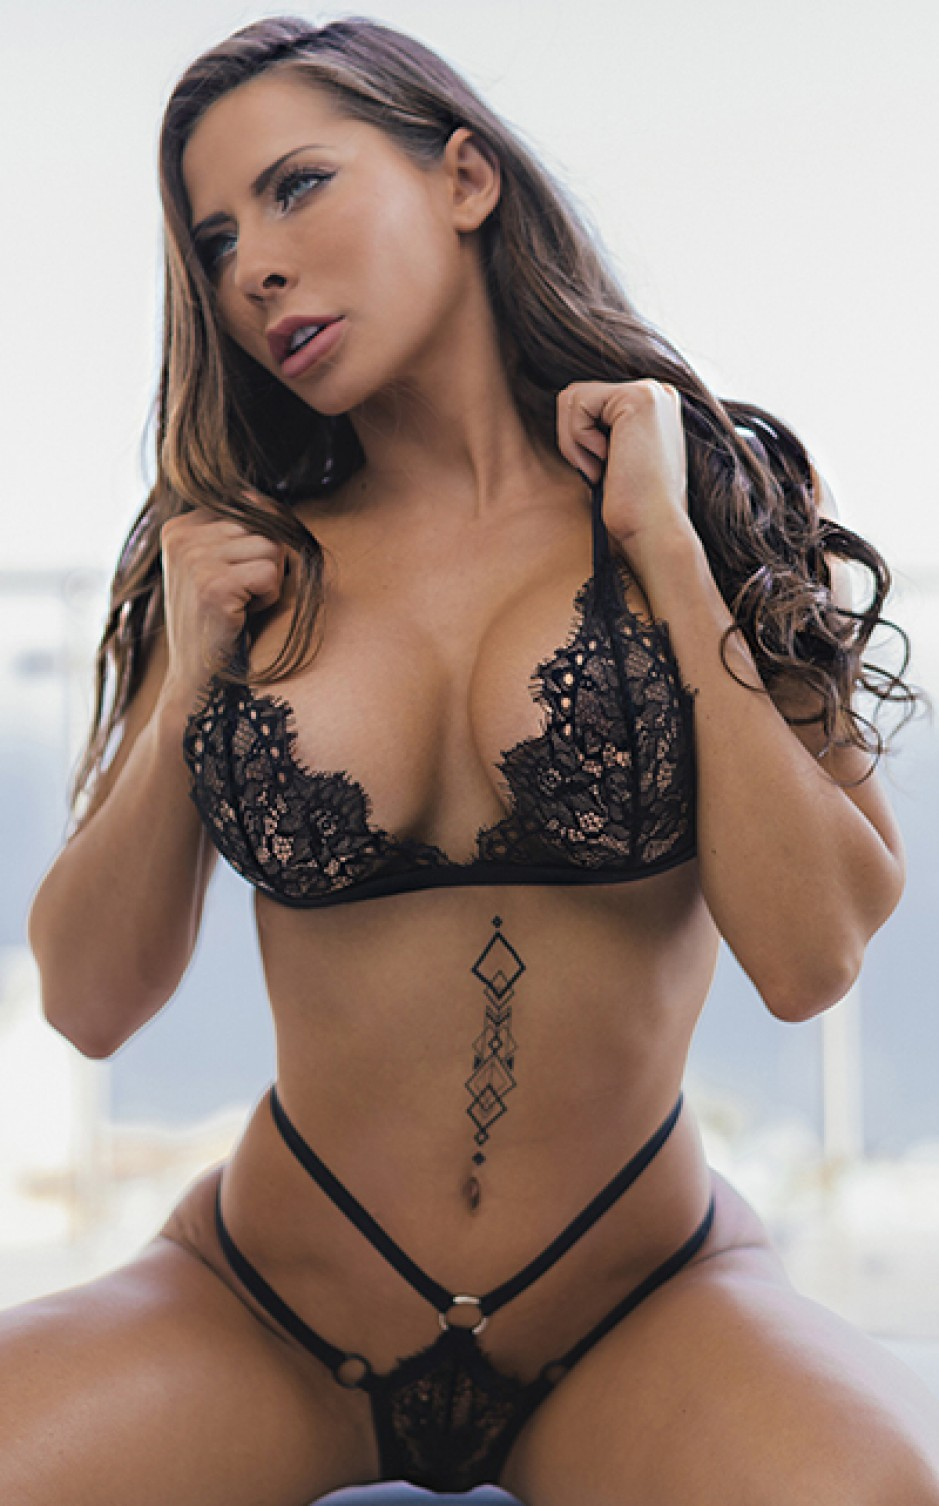 madison ivy official